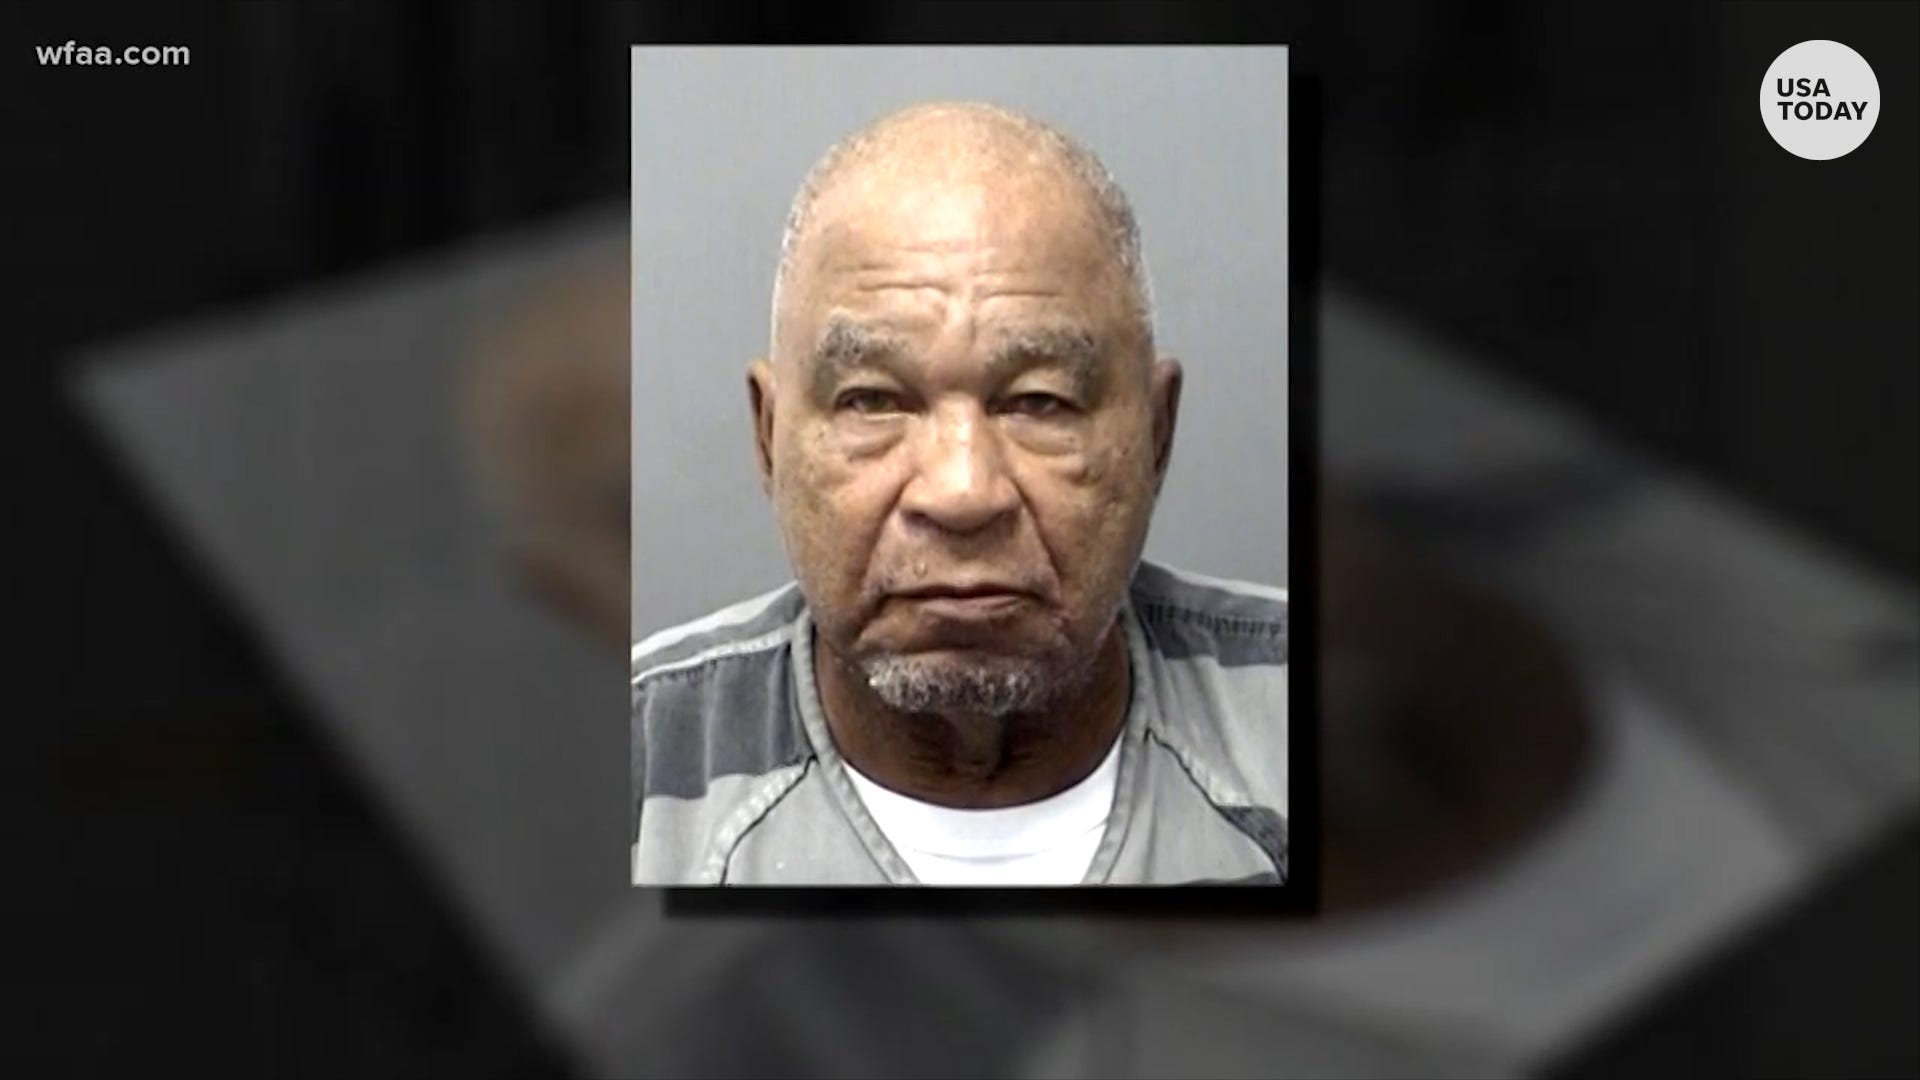 FBI: Suspected serial killer Samuel Little confesses to 90 murders